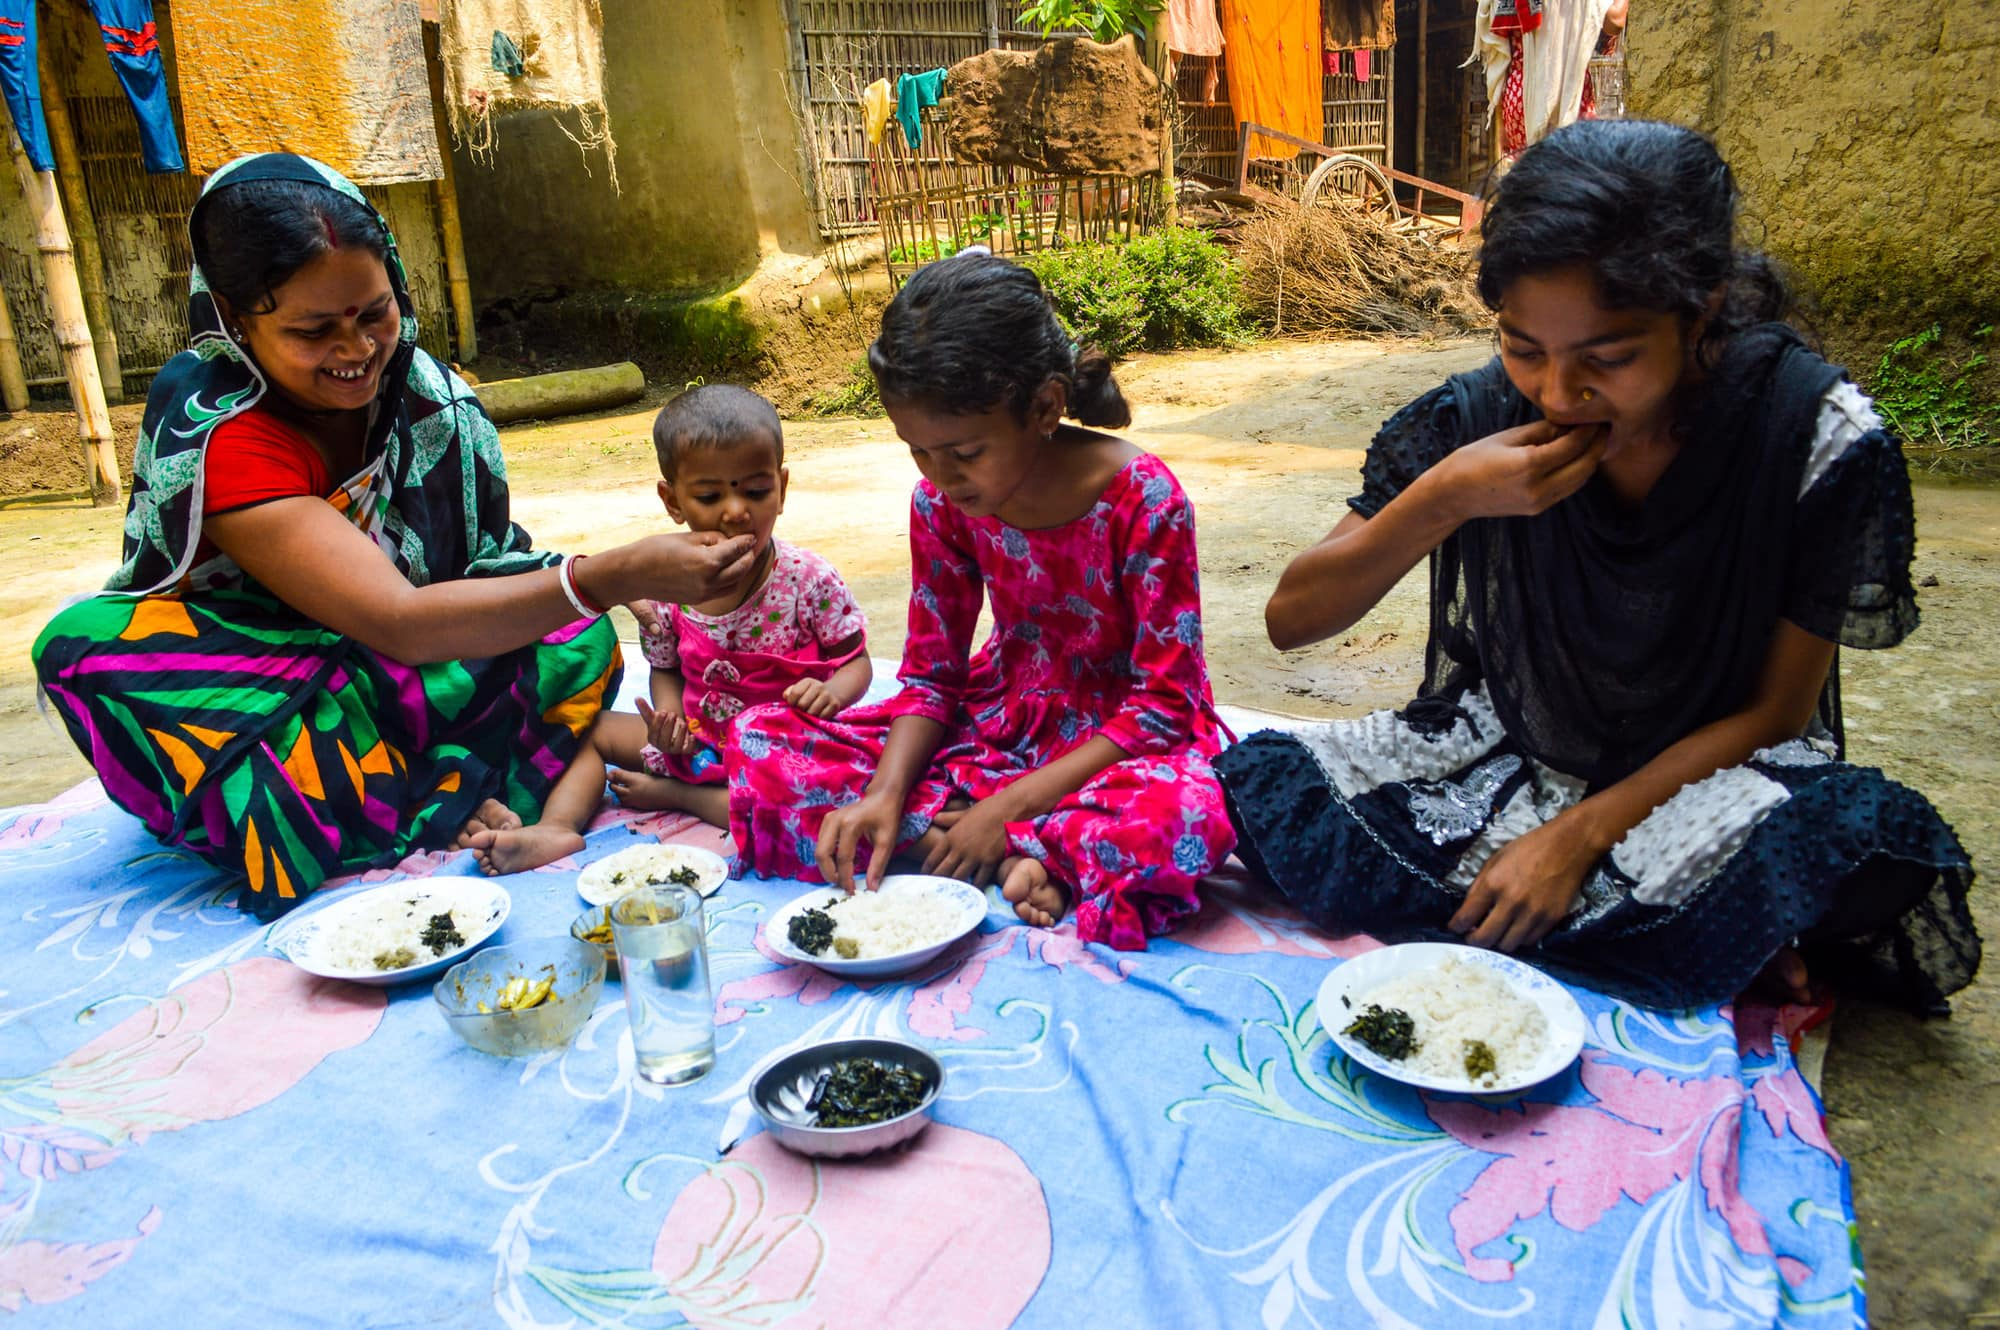 Pronoti Rani and her children eat nutrient-rich small fish in their meal in Moulavibazar, Bangladesh. Photo by Mohammad Mahabubur Rahman.